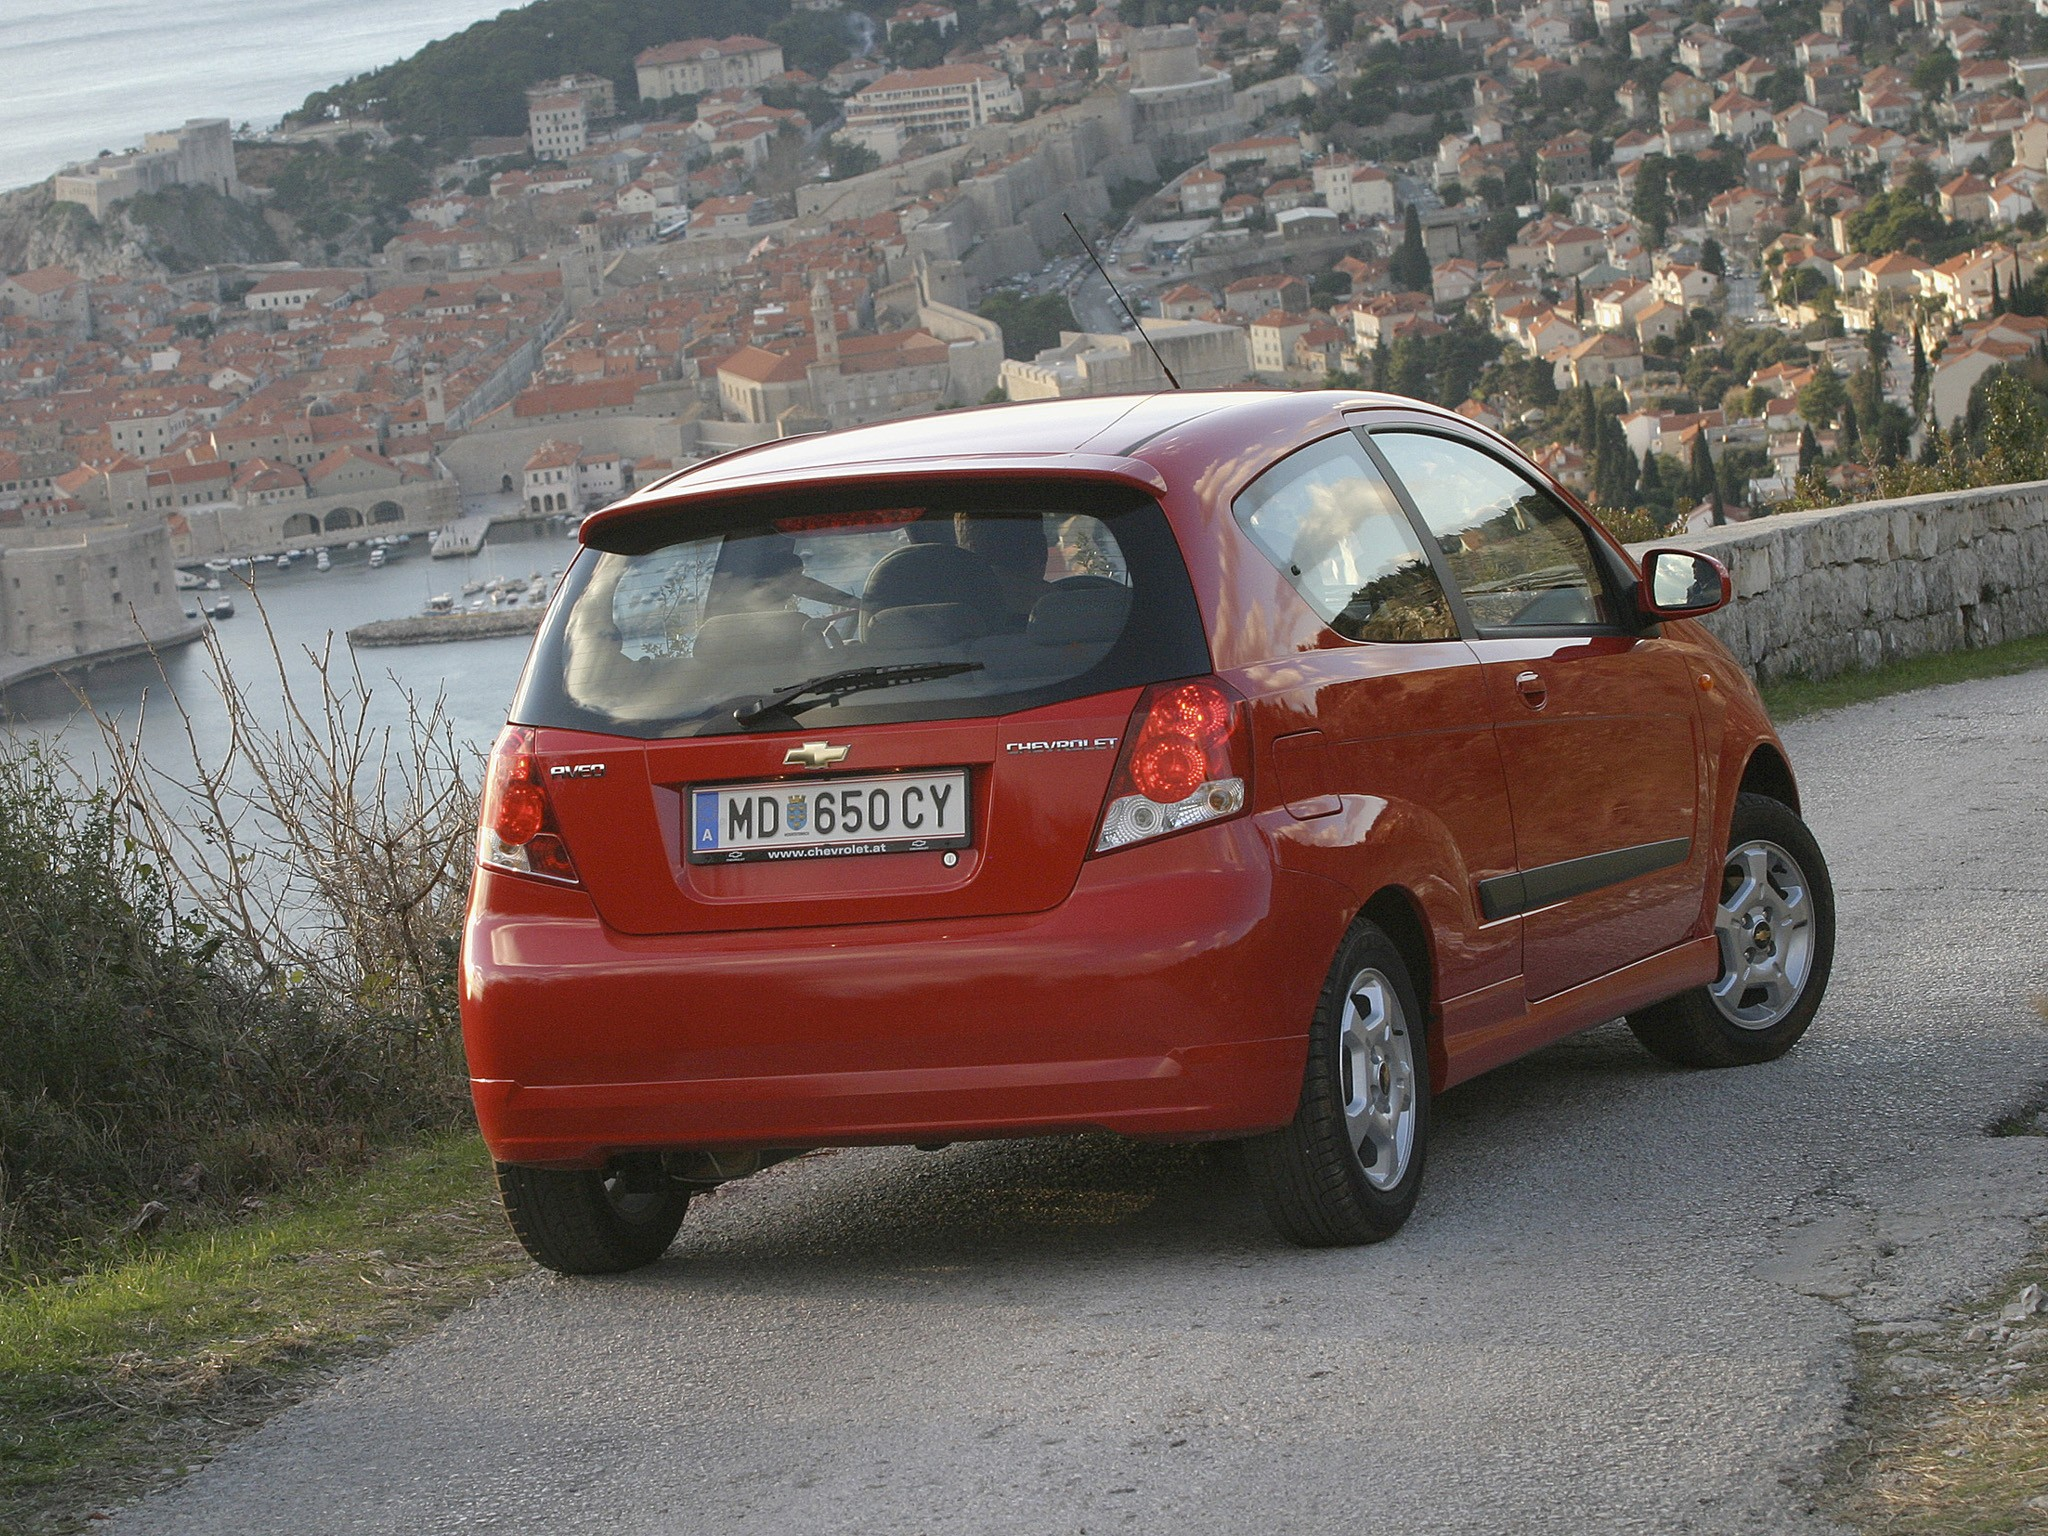 CHEVROLET Aveo/Kalos 3 Doors specs & photos - 2004, 2005 ...